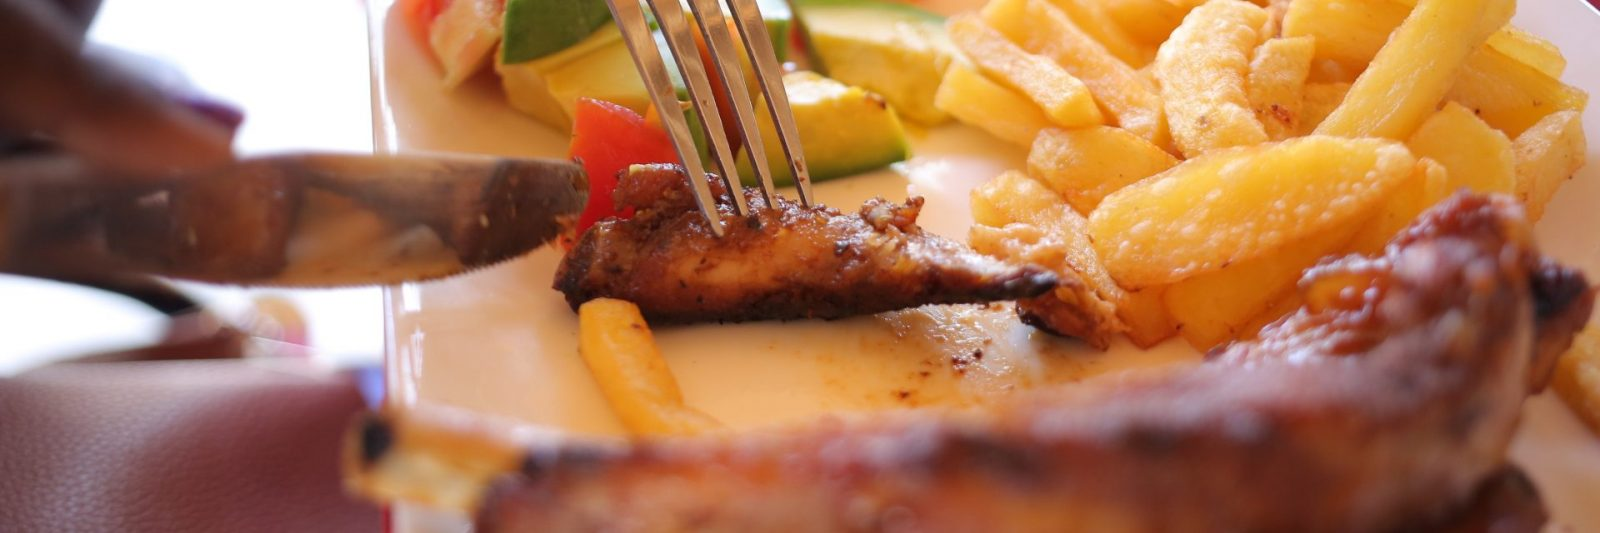 enjoy lunch or dinner at the entebbe palm hotel